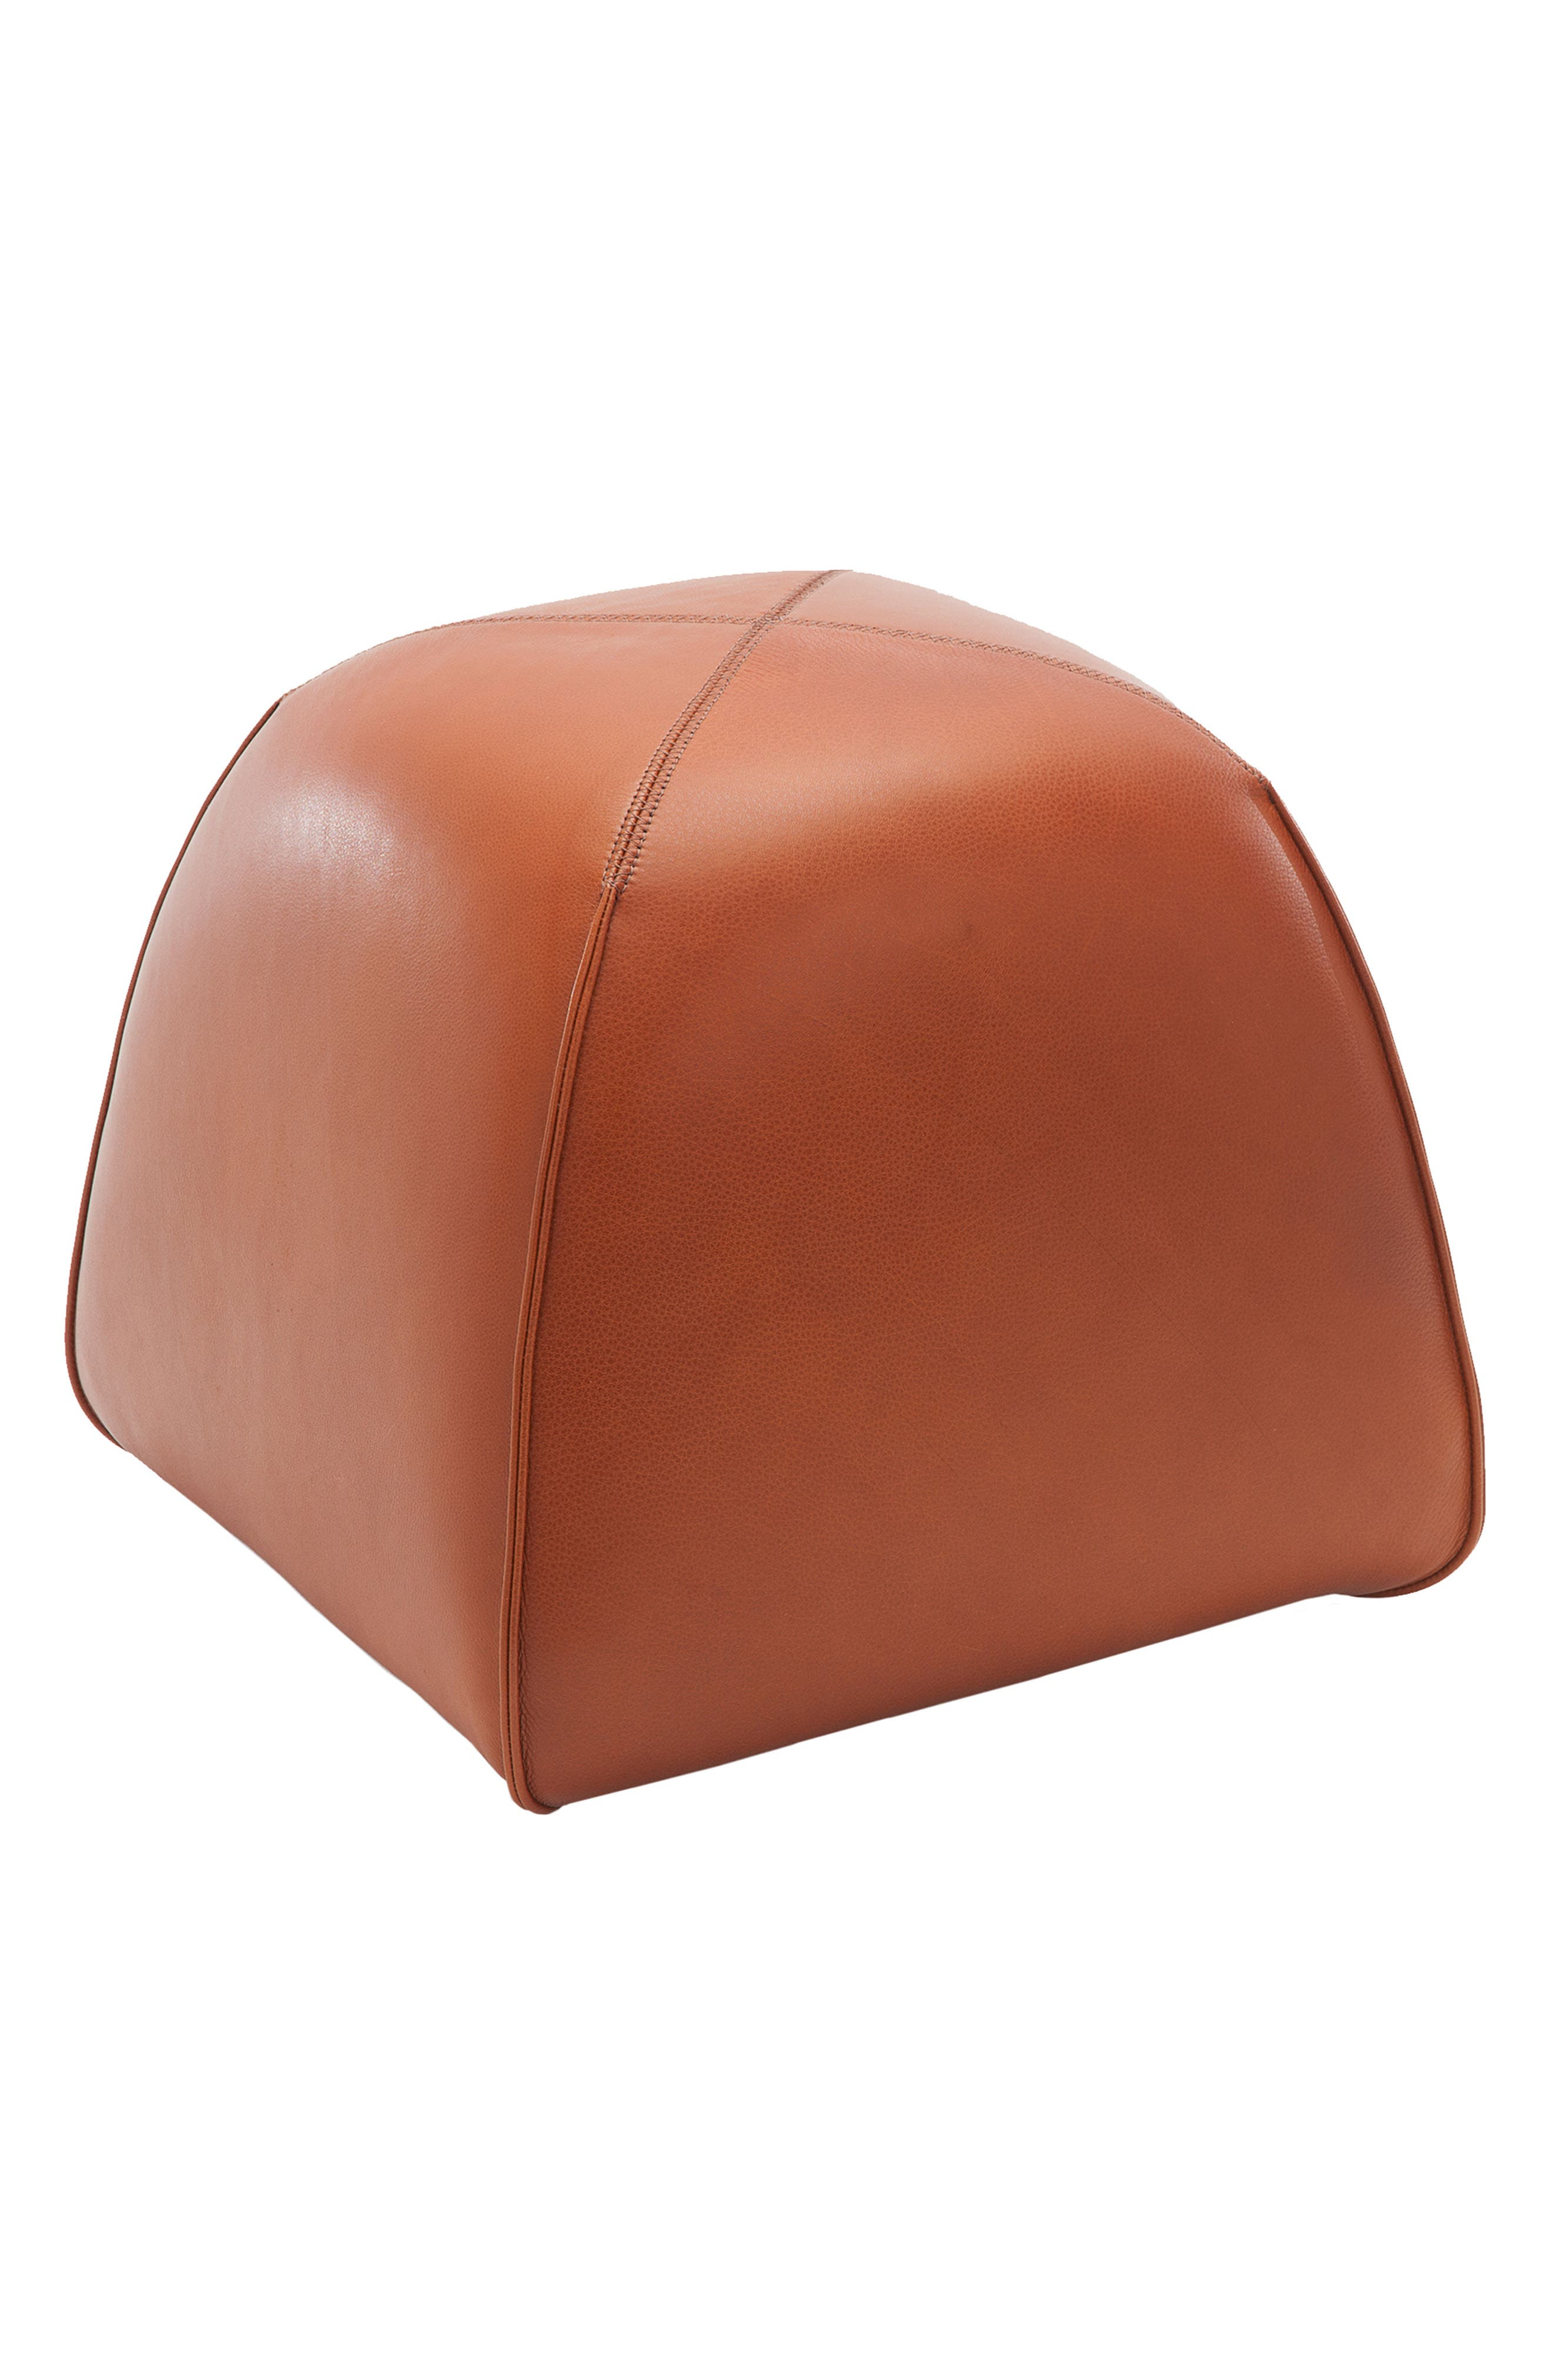 Design on Stock USA BimBom Leather Stool